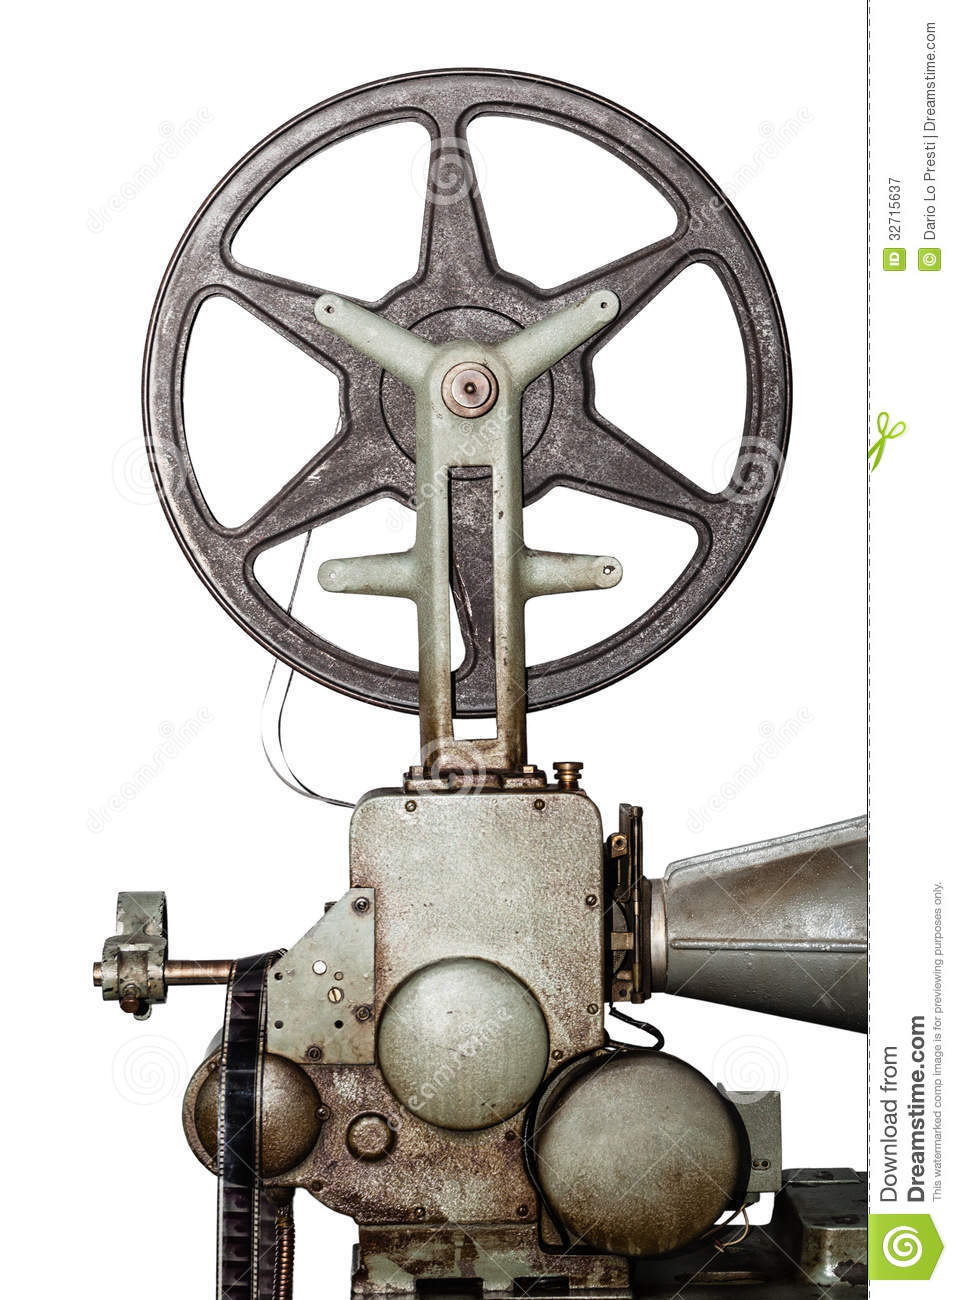 Old Projector stock image  Image of motion, history, 16mm - 32715637